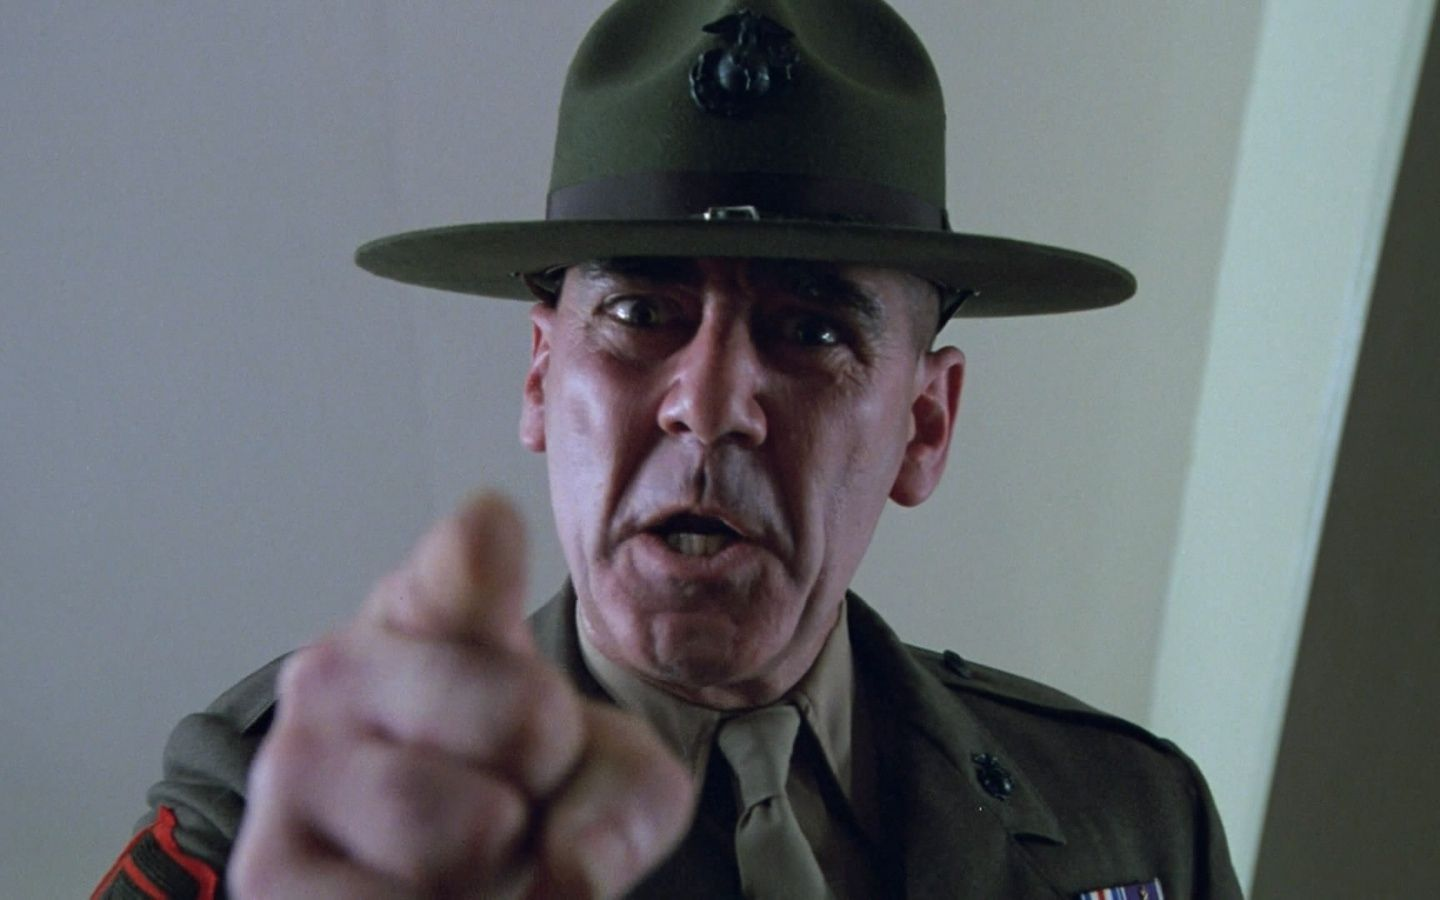 The R. Lee Ermey everyone knows!